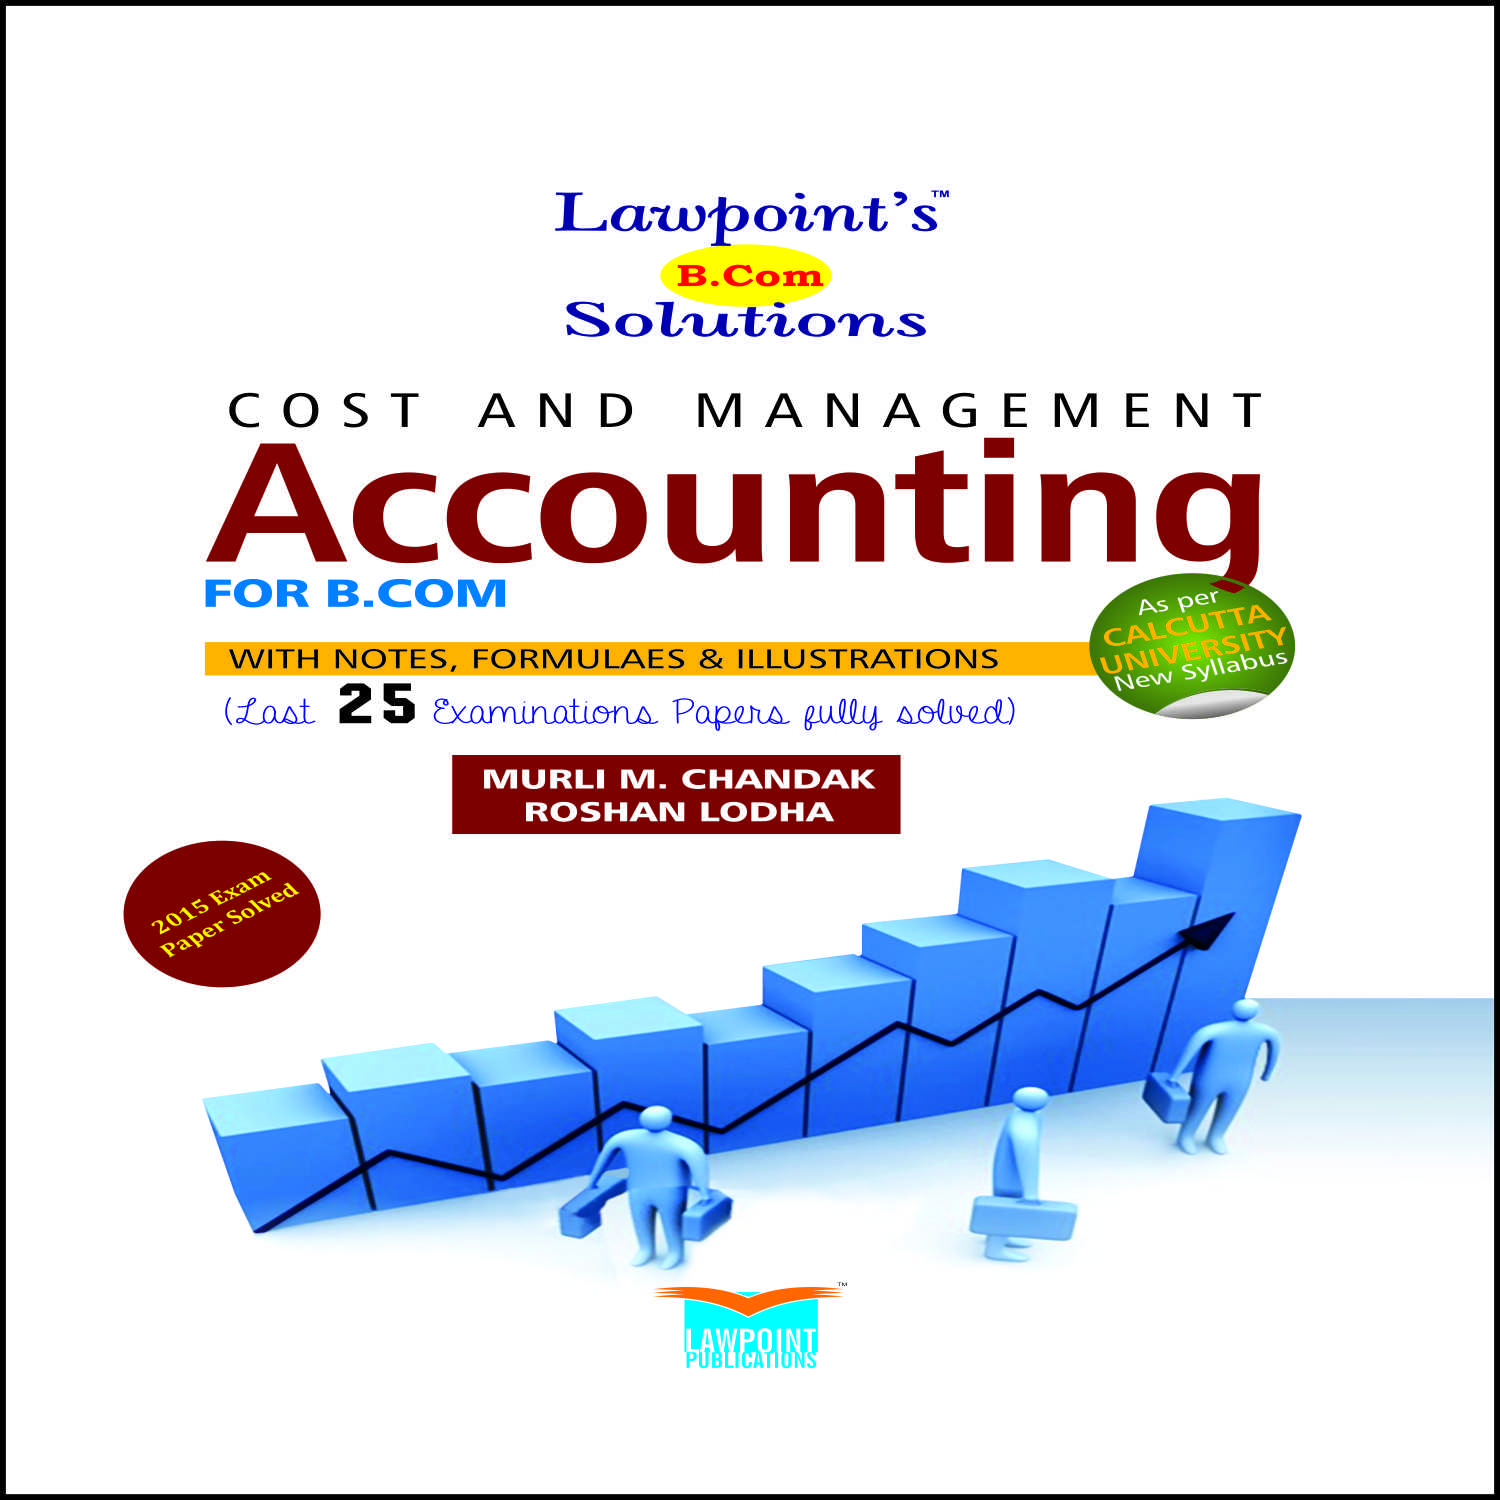 Lawpoint's B.Com Solutions Cost and Management Accounting